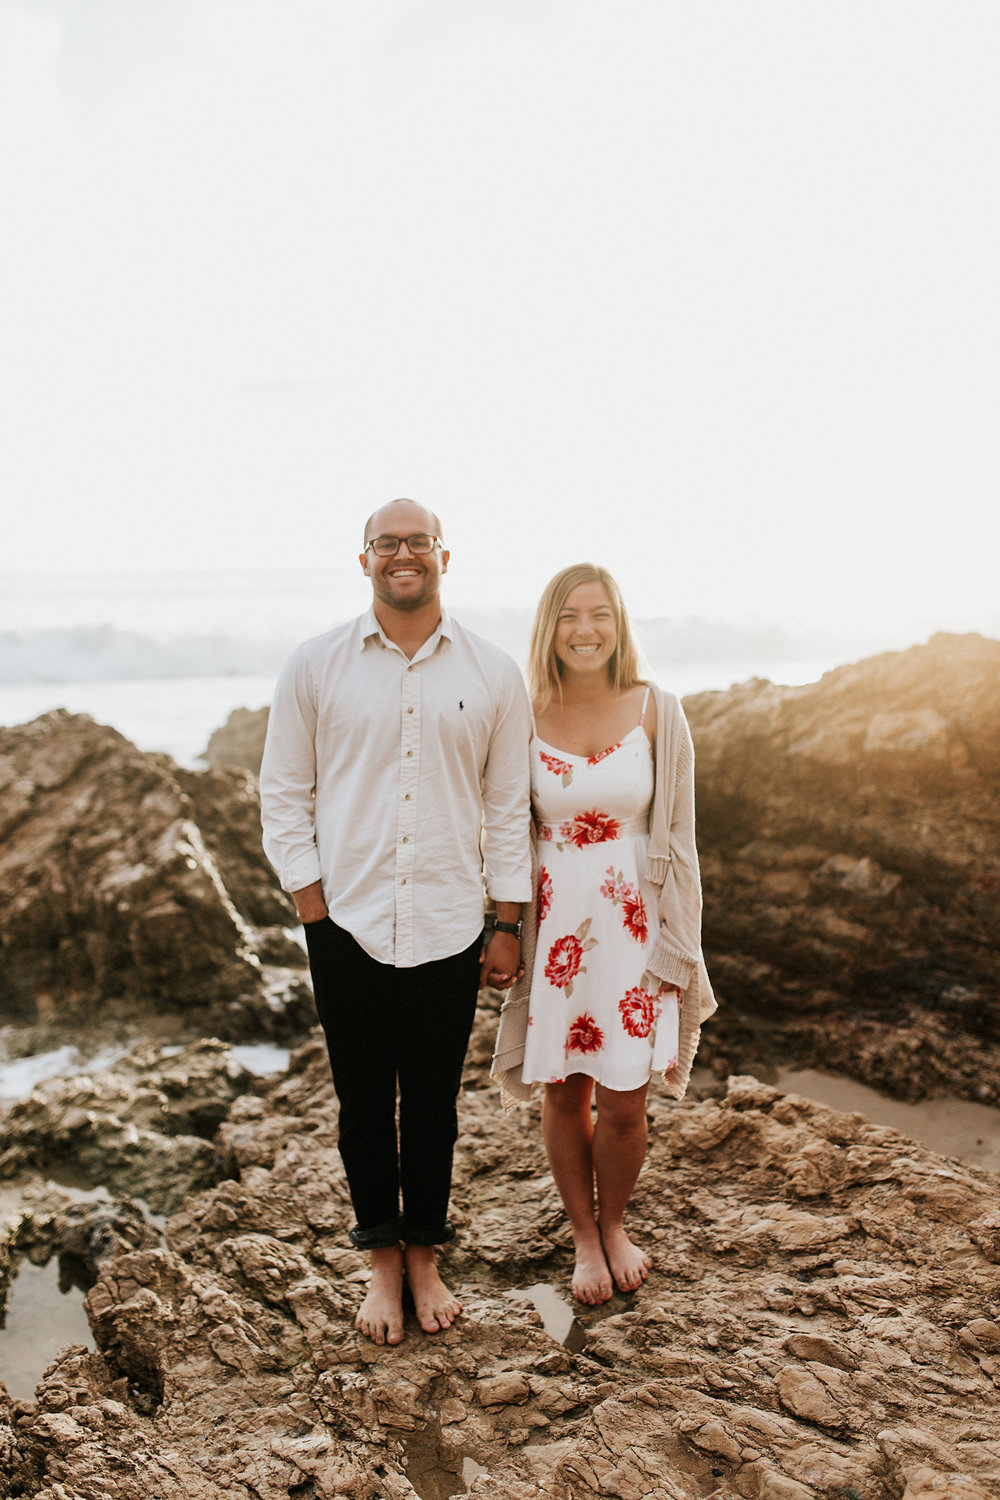 Ep. #33 - Dating, Purity, Becoming Whole in Christ - with Trevor and Natalie Lawrence - Podcast host Natalie Lawrence interviews her husband Trevor! We talk about our love story and how EVERYTHING changed when we individually started to follow Jesus. From high school sweet hearts, long distance dating, and now marriage! NOTE: This is note a